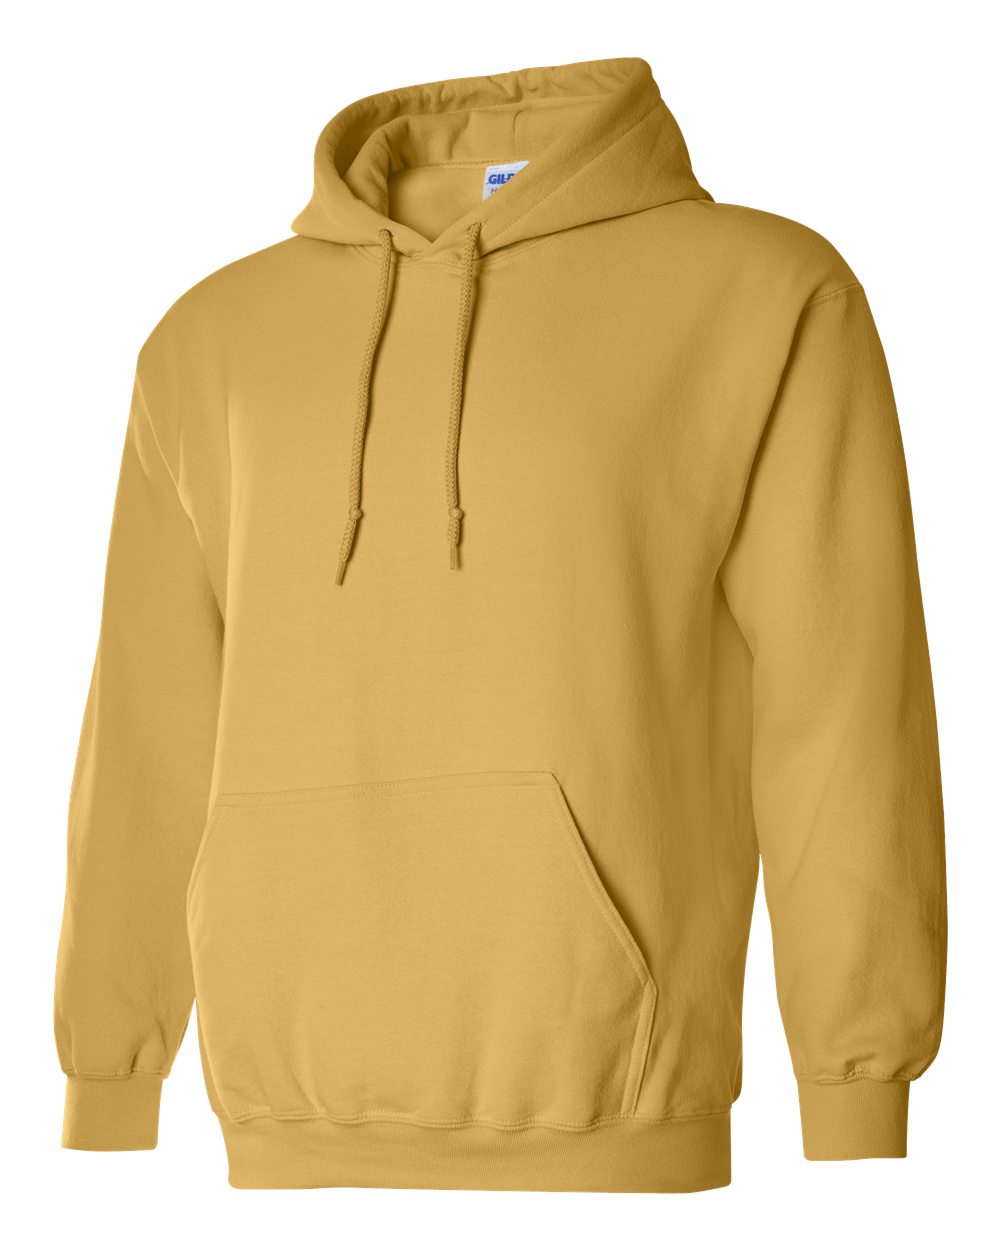 Gildan Heavy Blend Hooded Sweatshirt GI18500 Honey